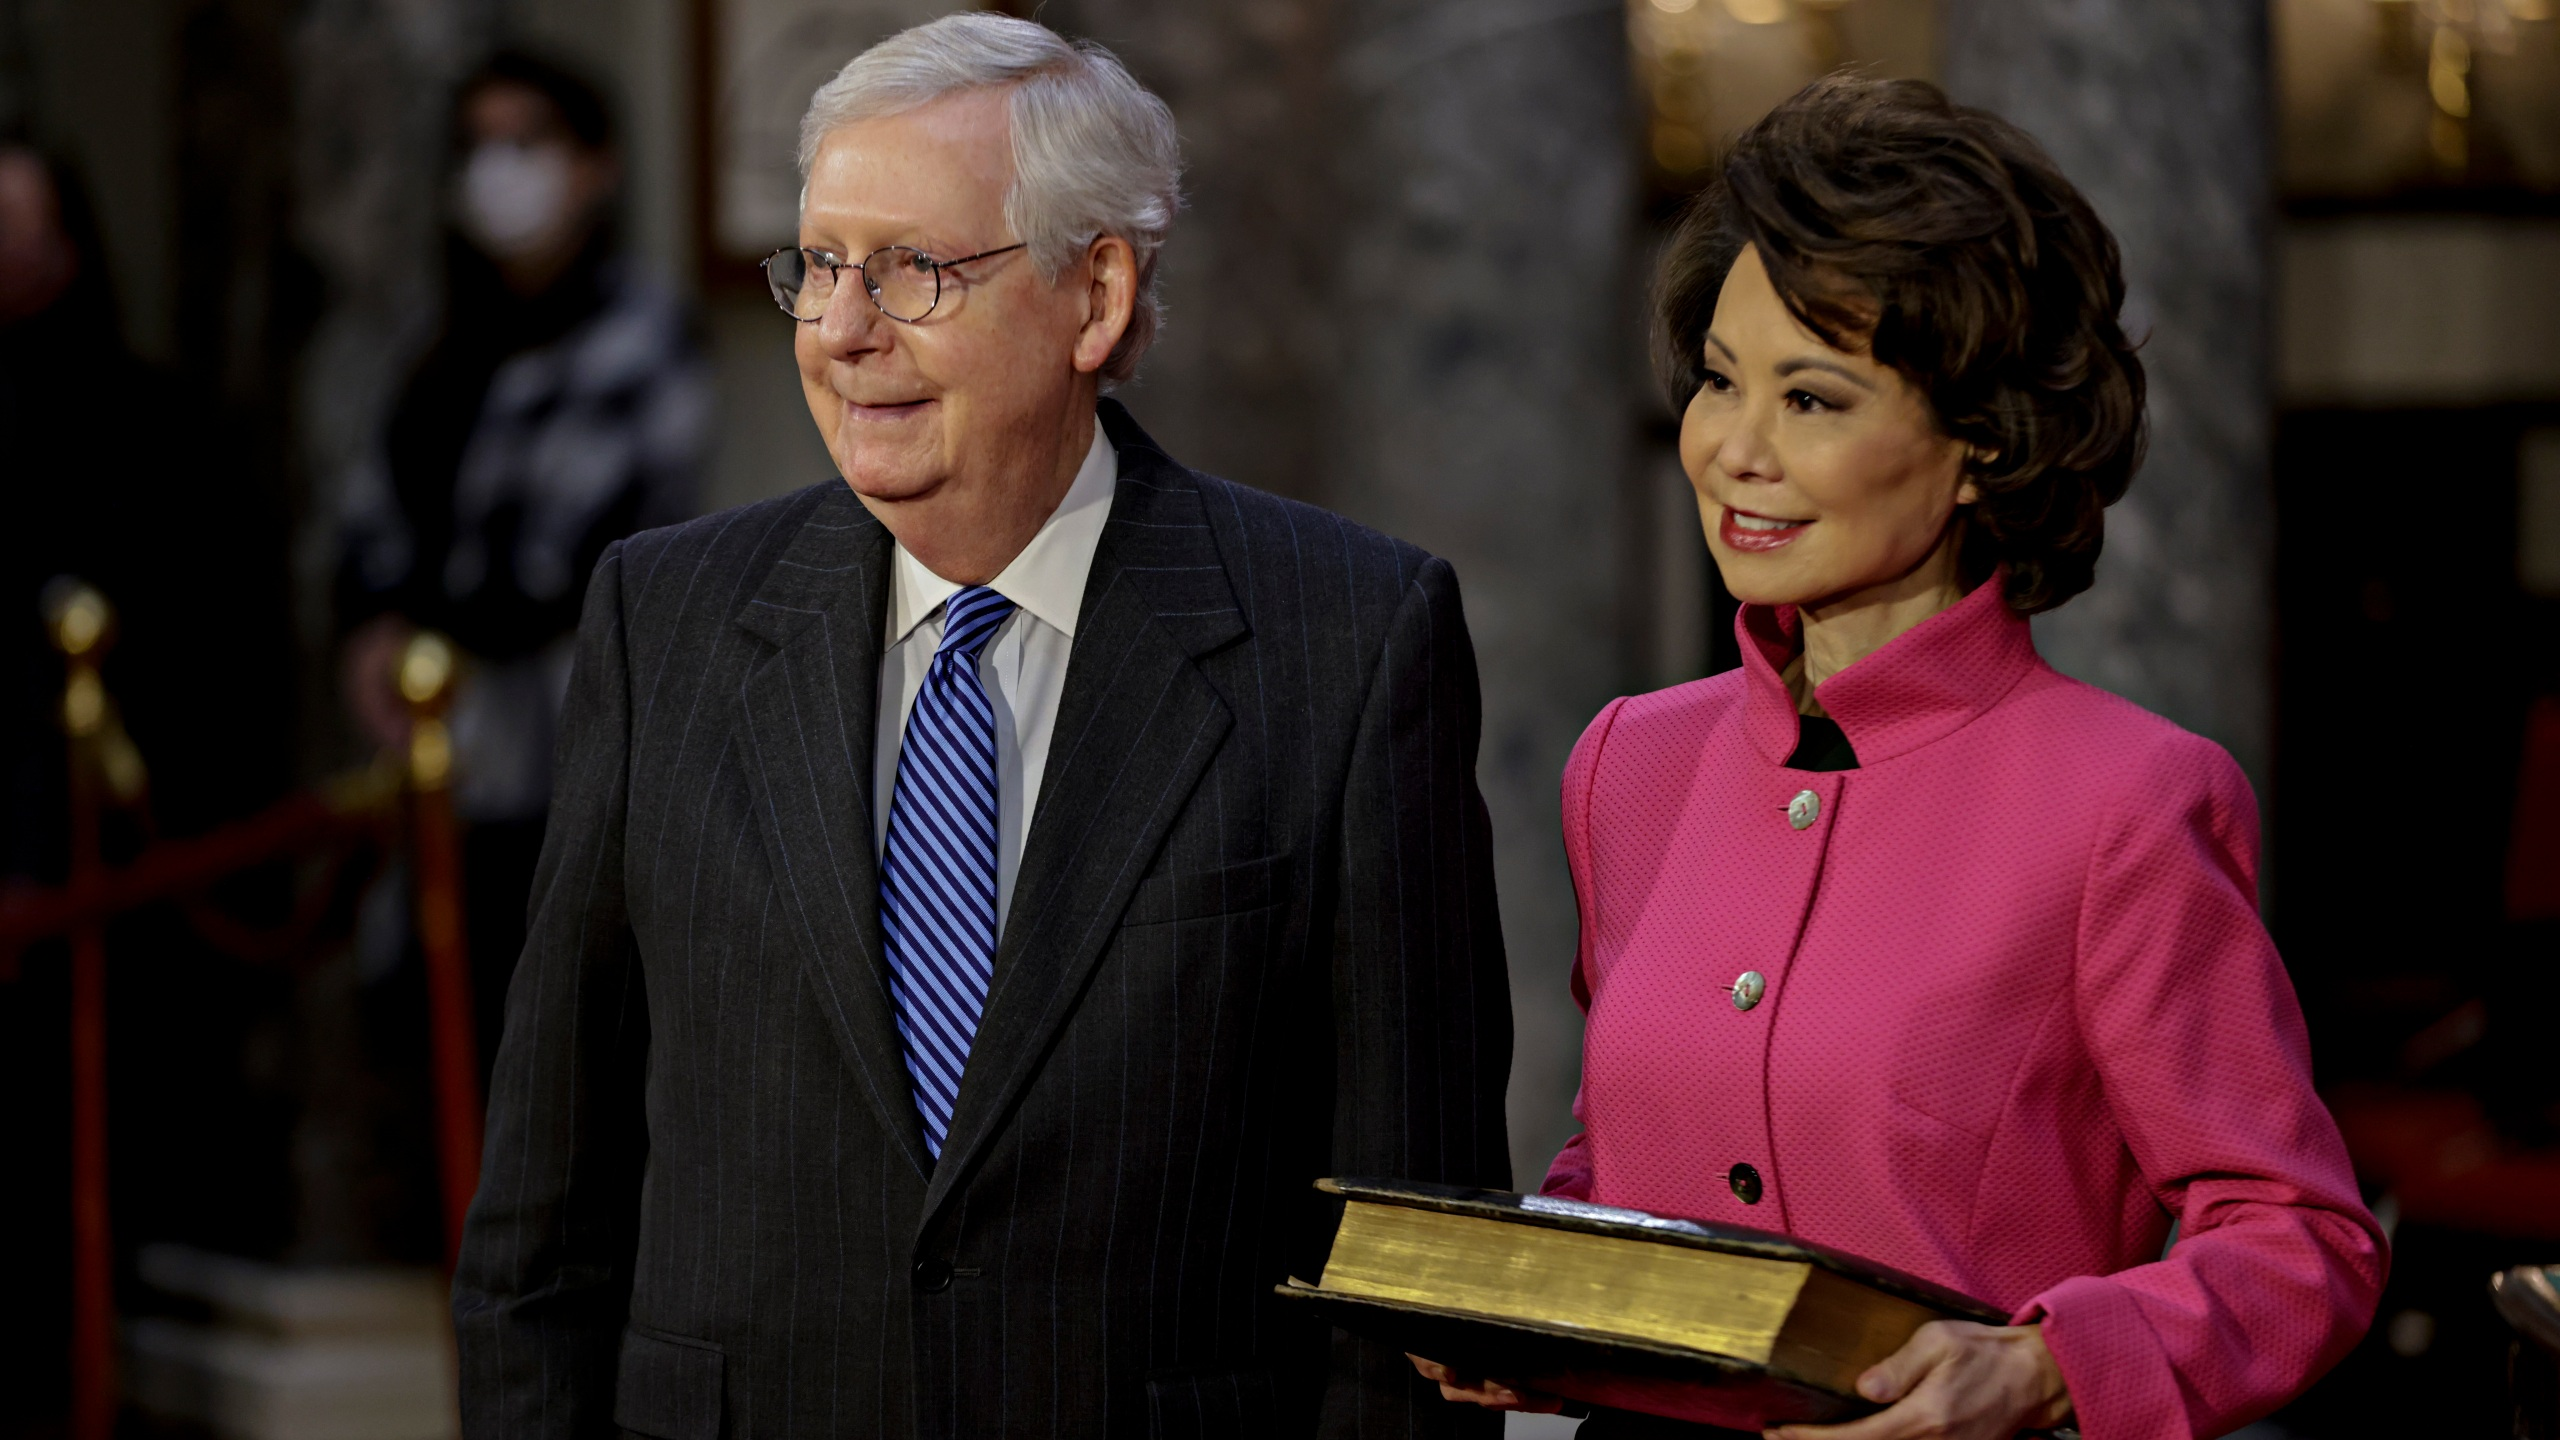 Sen. Mitch McConnell, R-Ky., and his wife Transportation Secretary Elaine Chao, wait for McConnell to be sworn in during a reenactment ceremony in the Old Senate Chamber at the Capitol in Washington, Jan. 3, 2021. (Samuel Corum/Pool via AP)